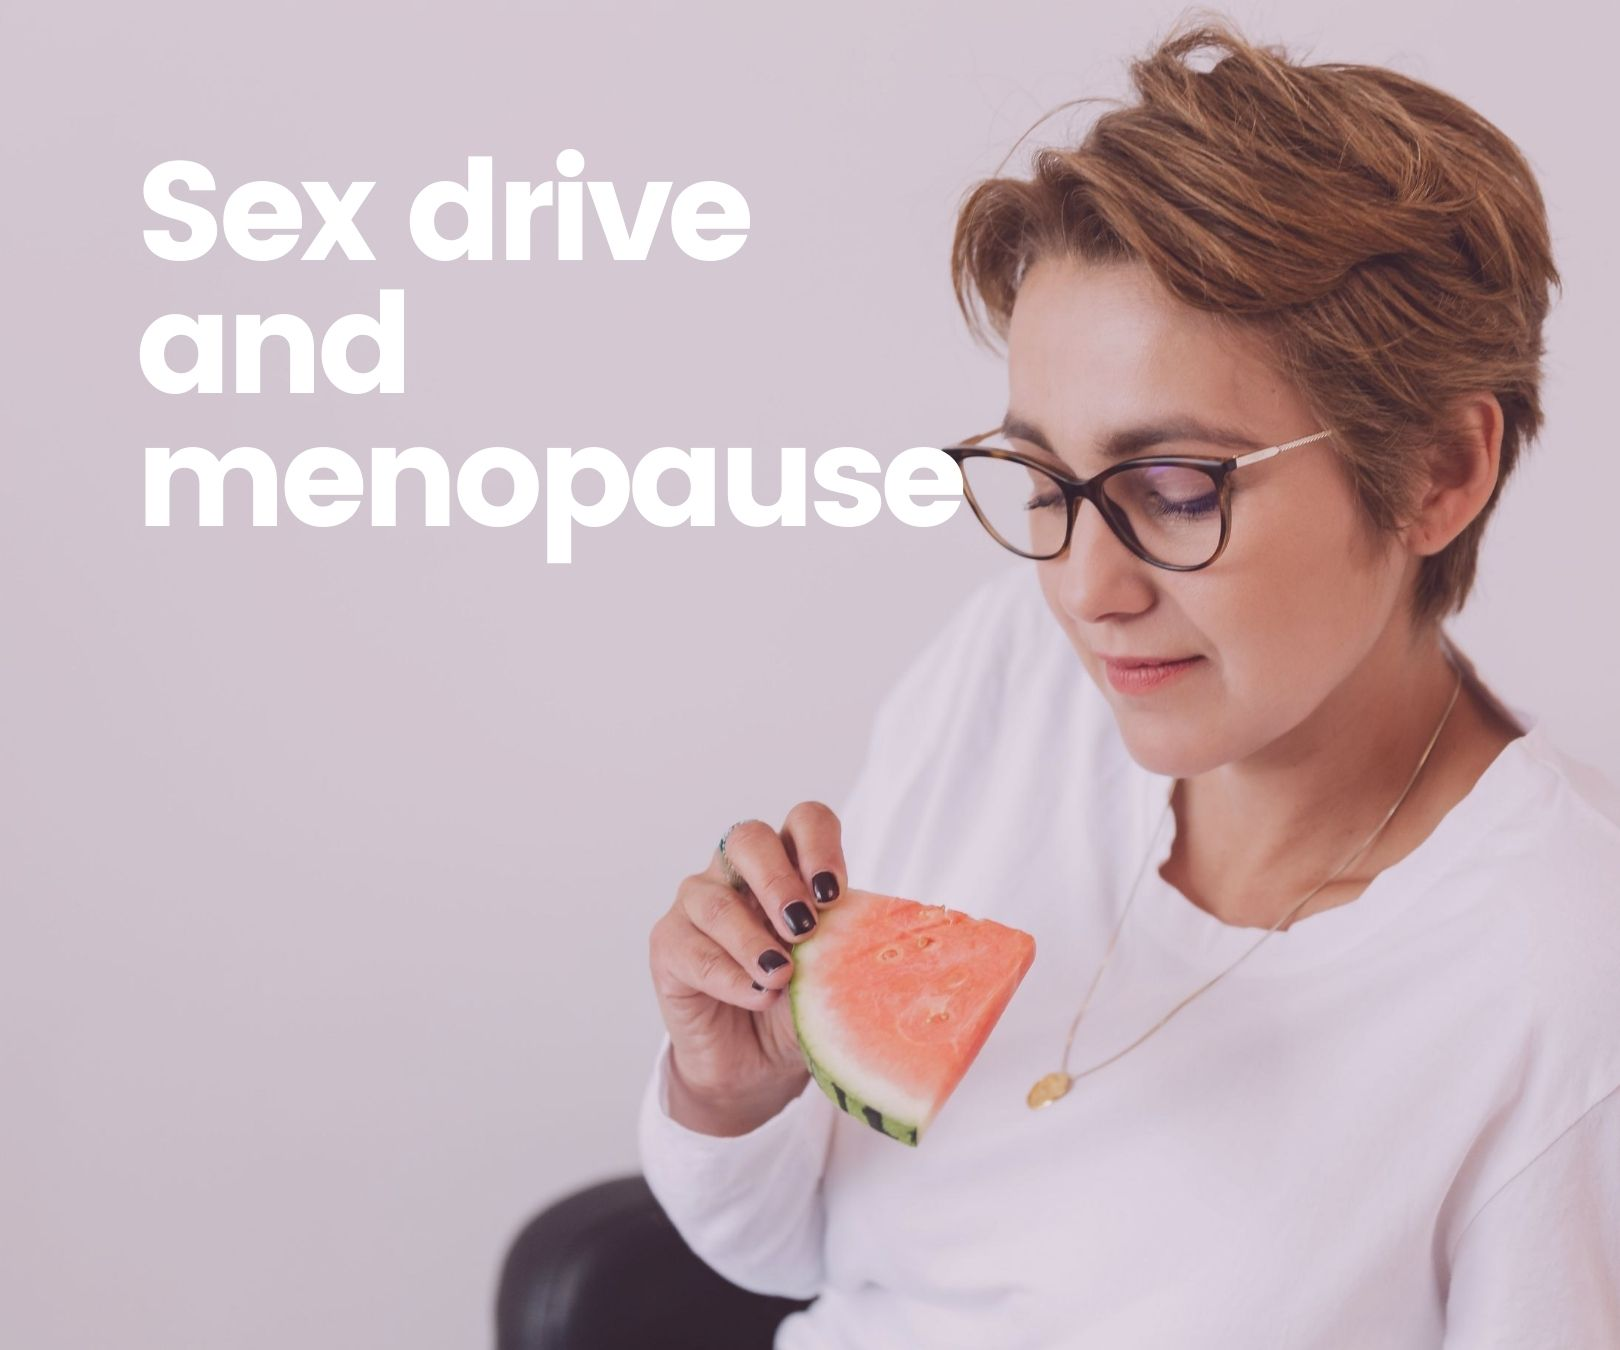 Sex drive and menopause